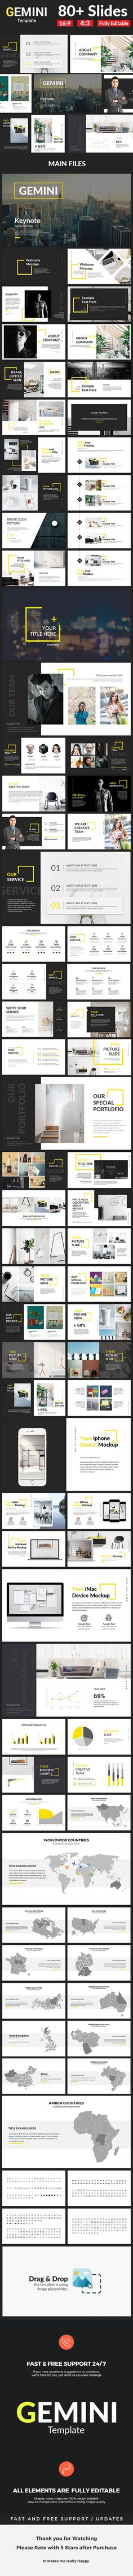 Gemini - Creative Keynote Template - Creative Keynote Templates